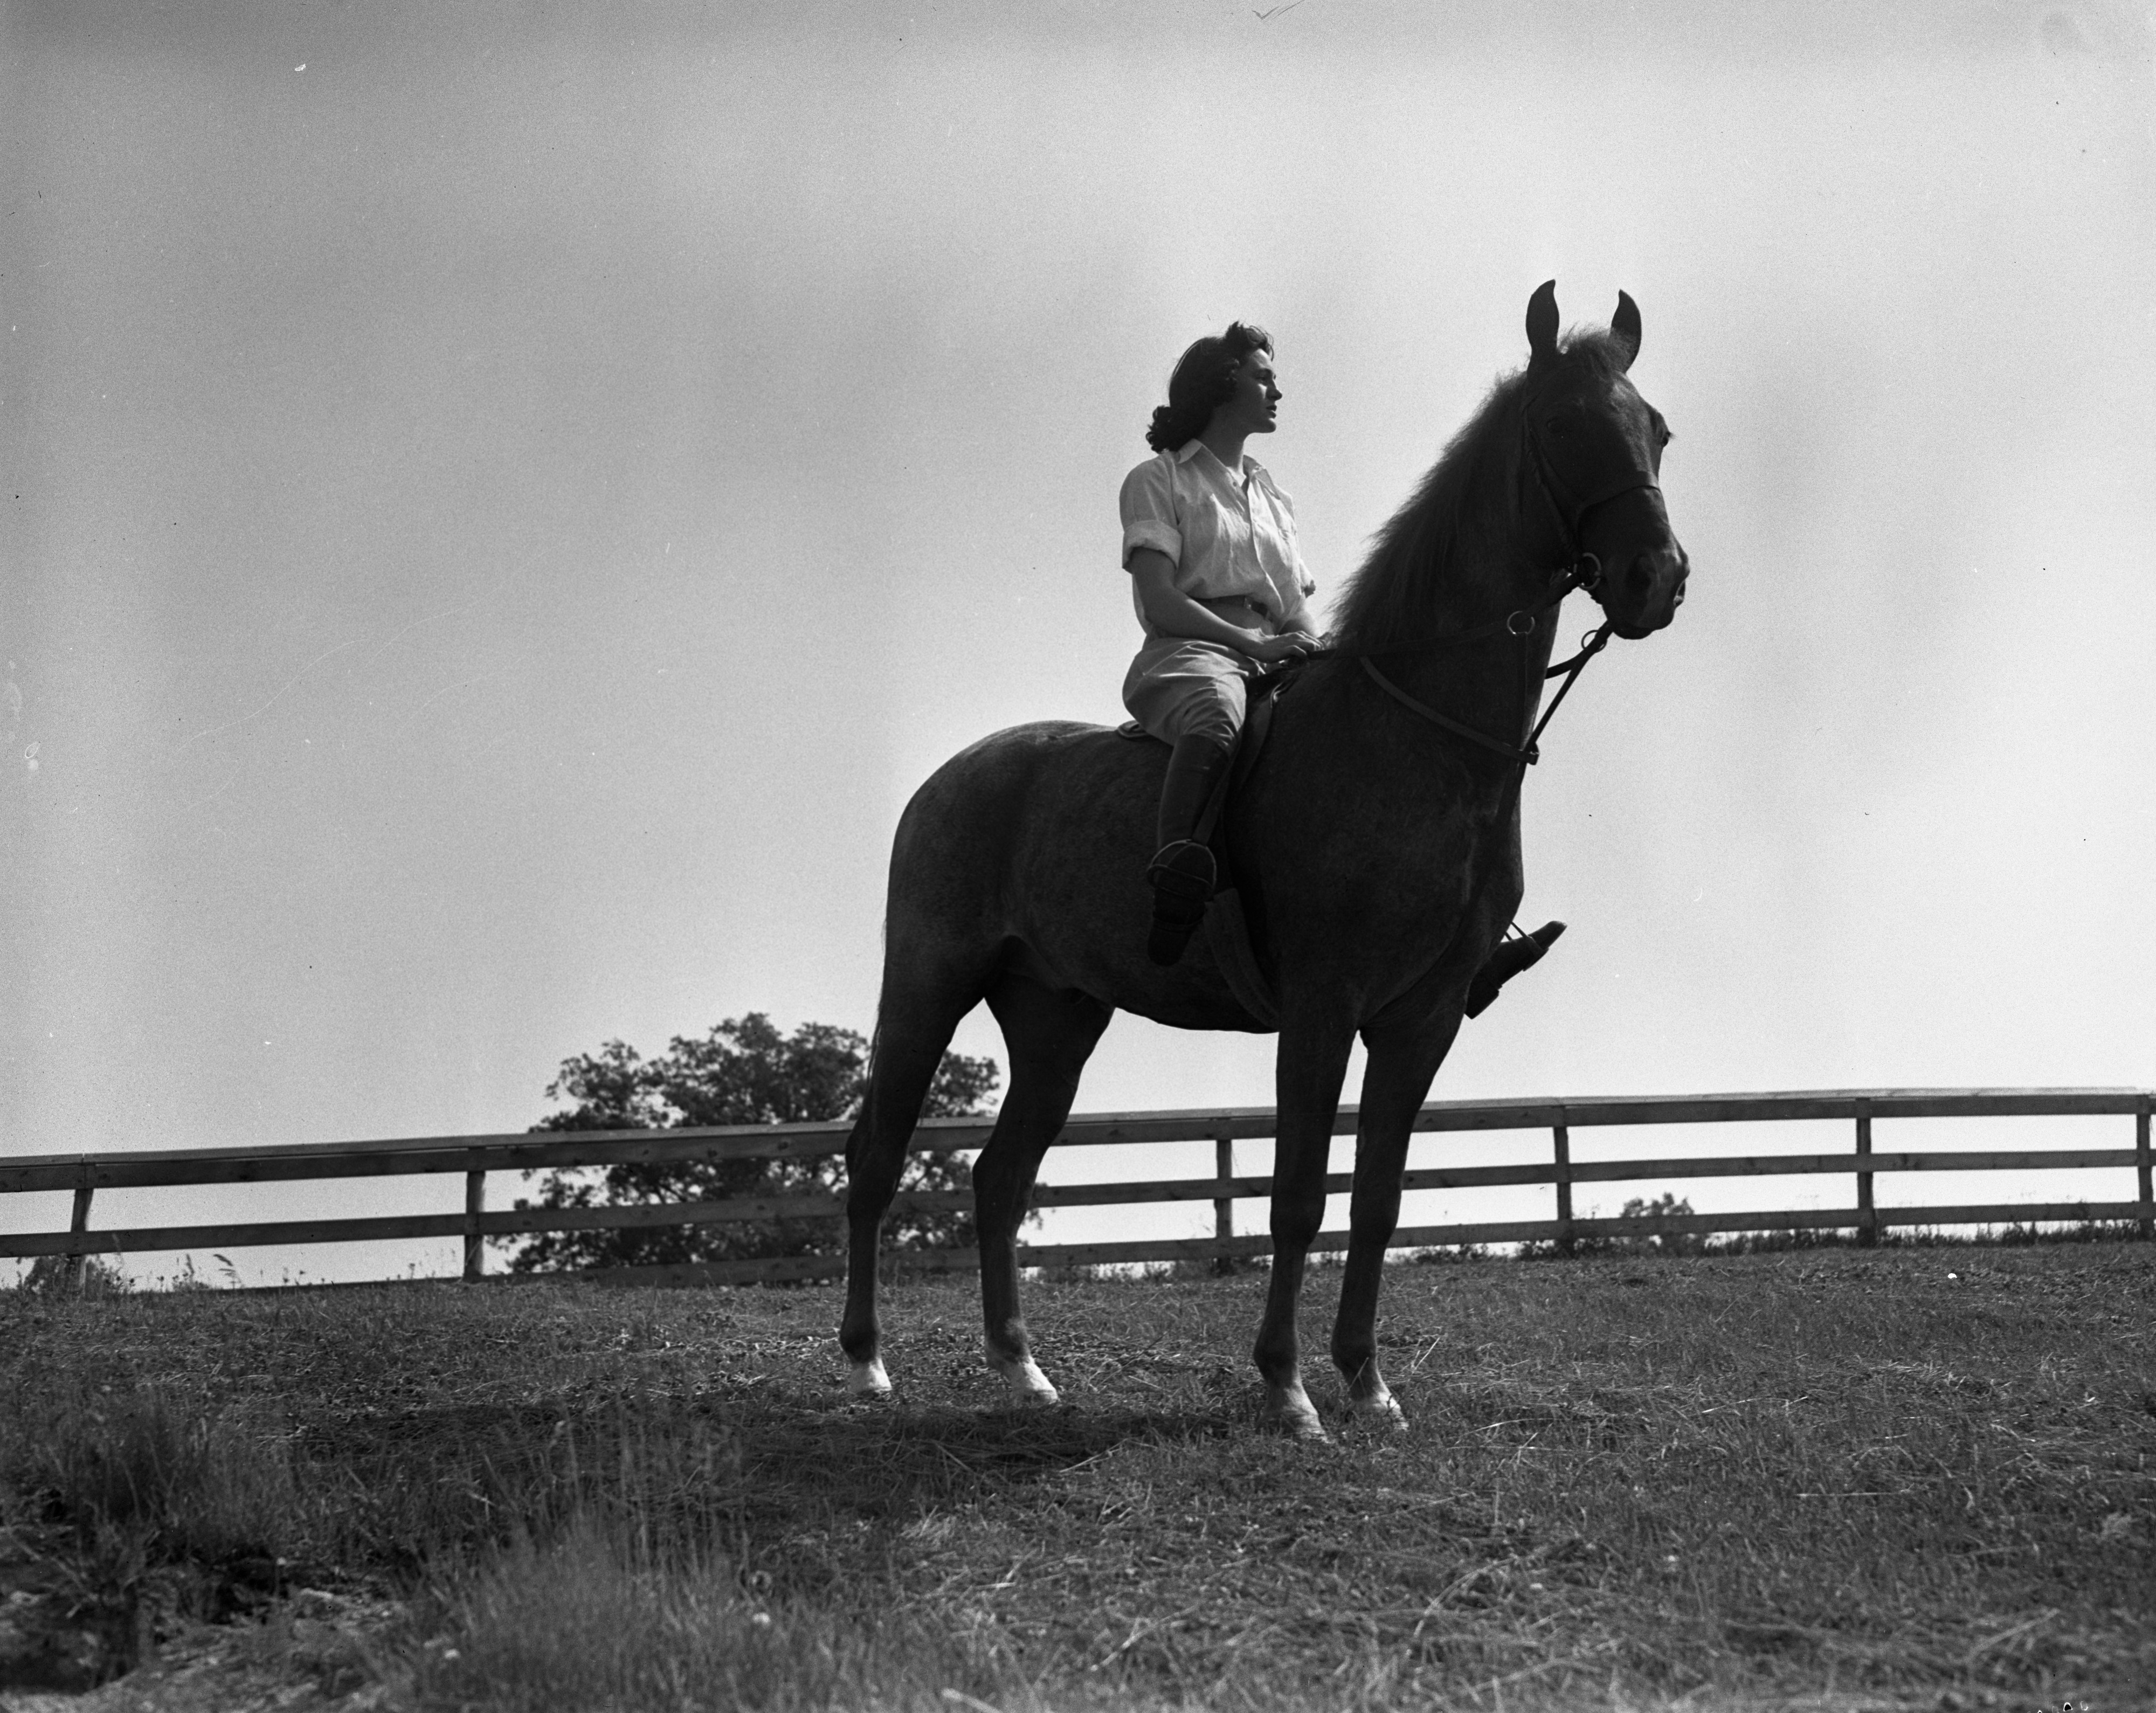 Mary Hayden On Horse, 1939 image